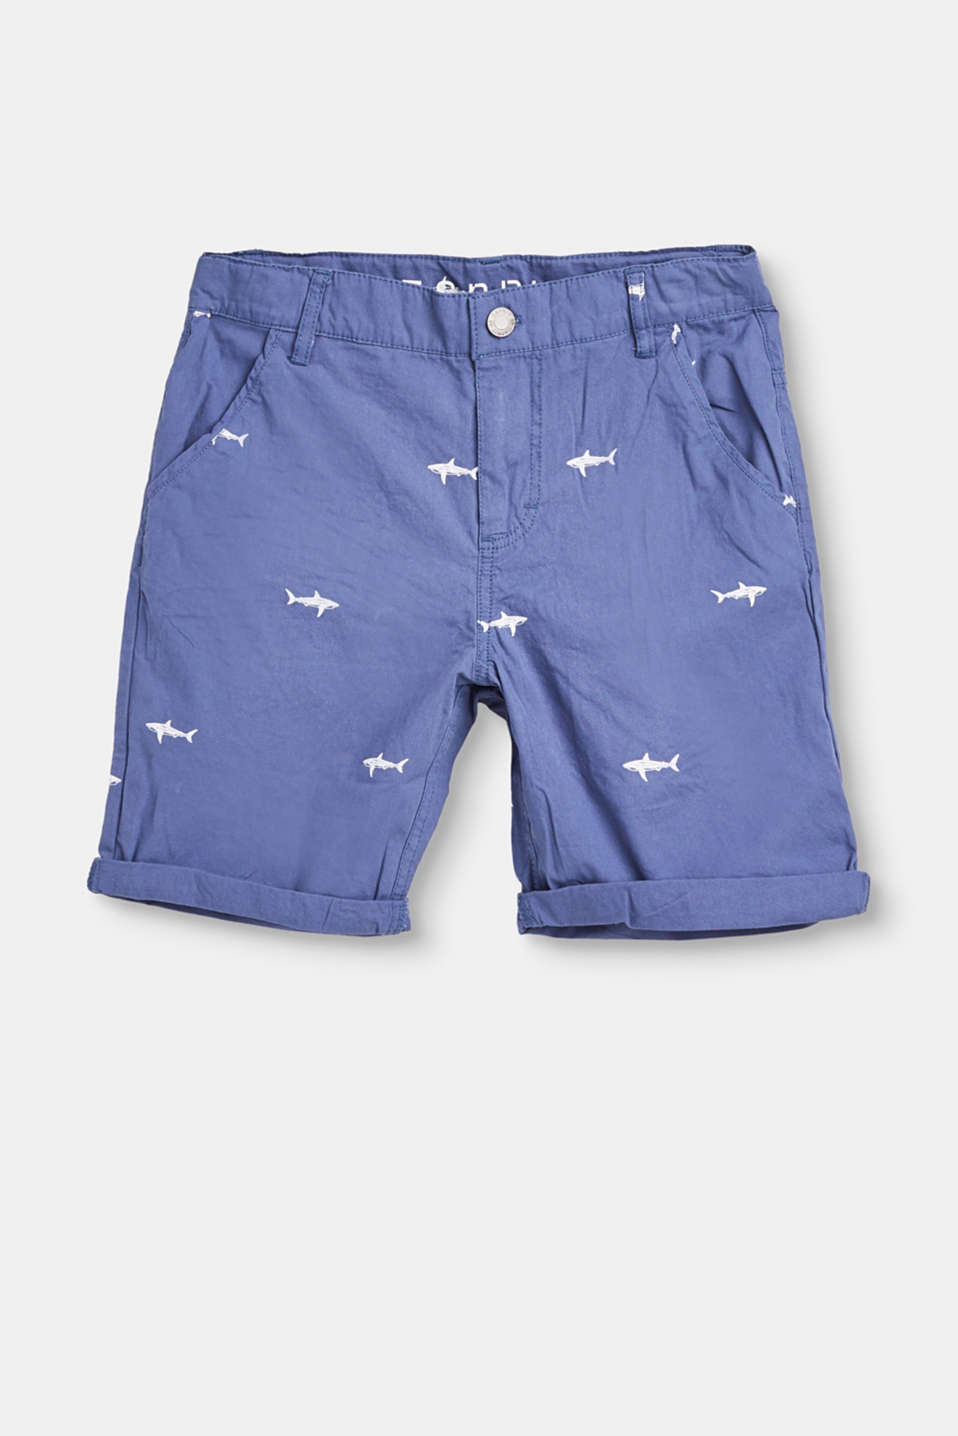 Esprit - Woven shorts with a shark print, 100% cotton